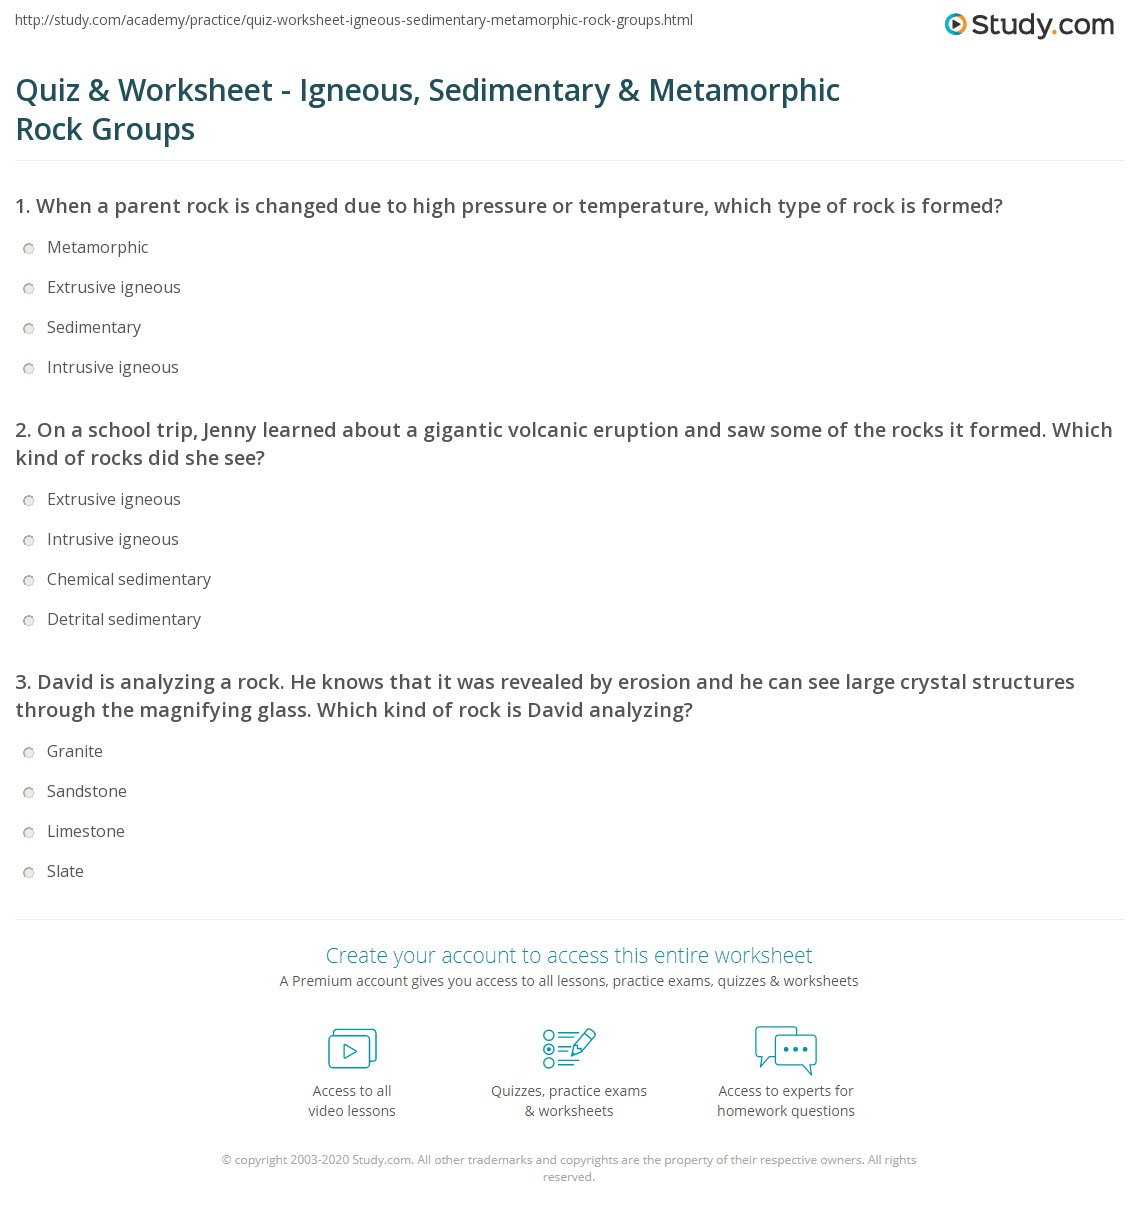 quiz worksheet igneous sedimentary metamorphic rock groups. Black Bedroom Furniture Sets. Home Design Ideas